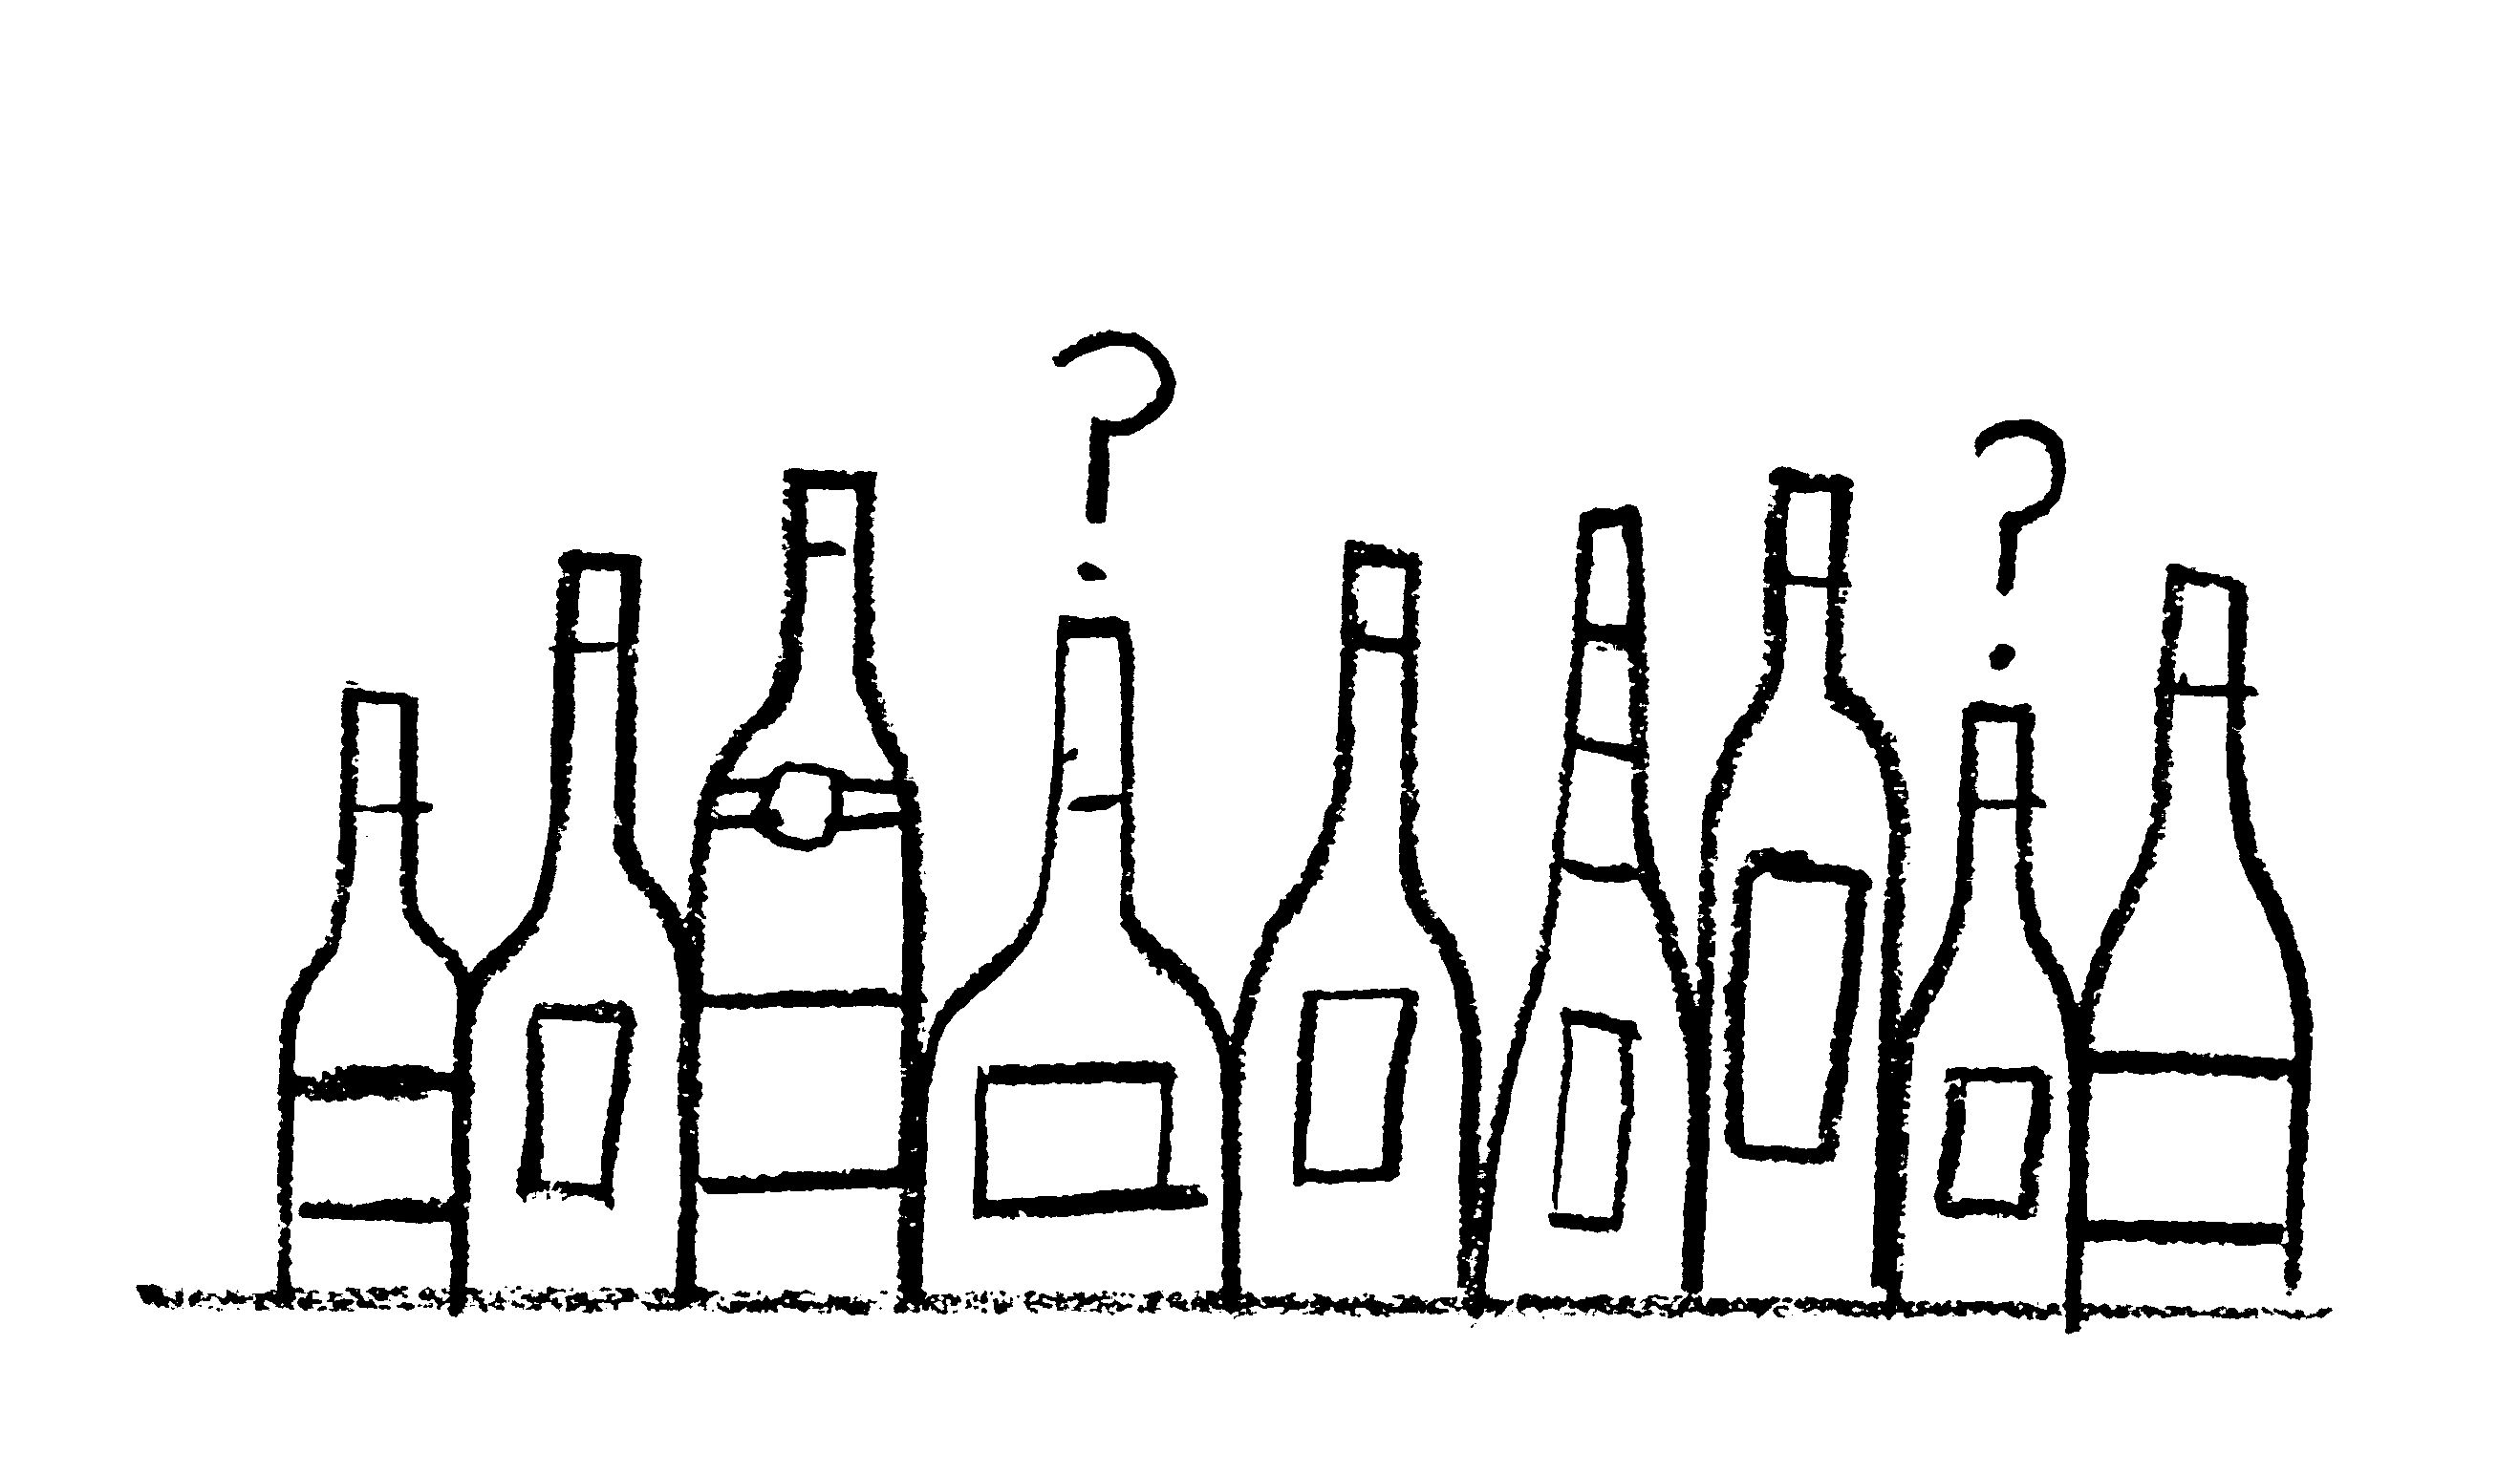 Illustration of bottles of wine with question mark